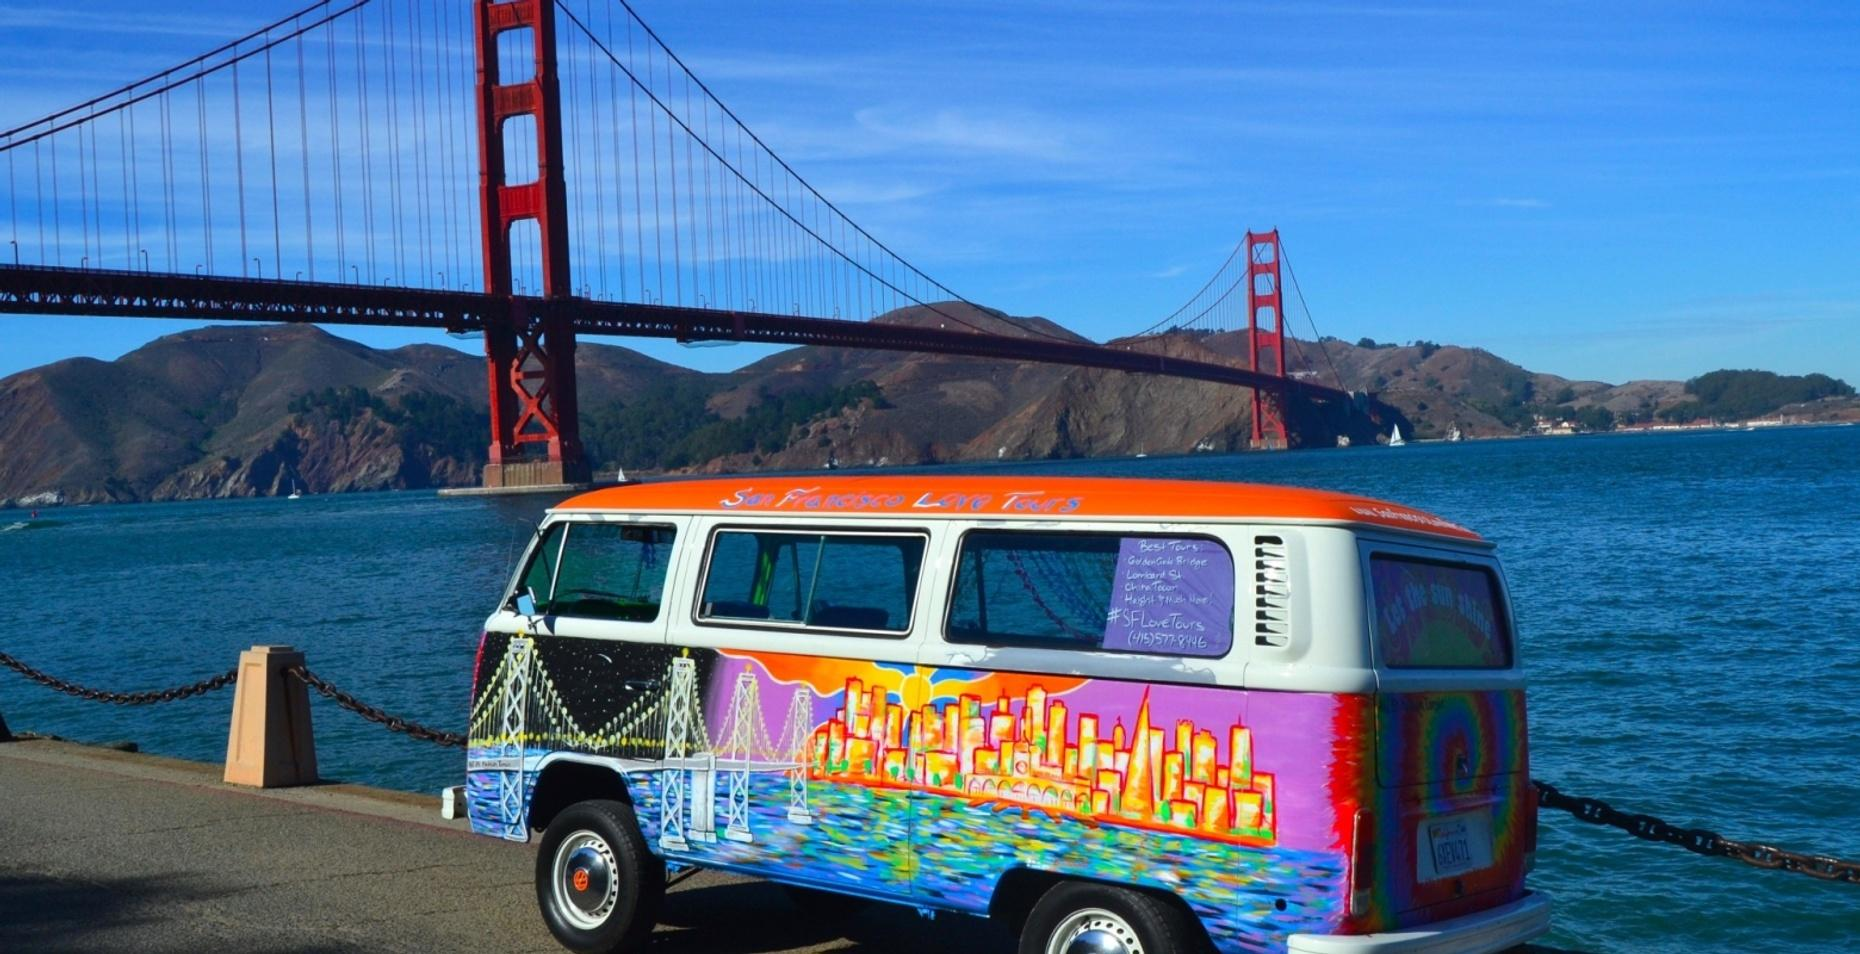 Volkswagen Bus Tour of San Francisco